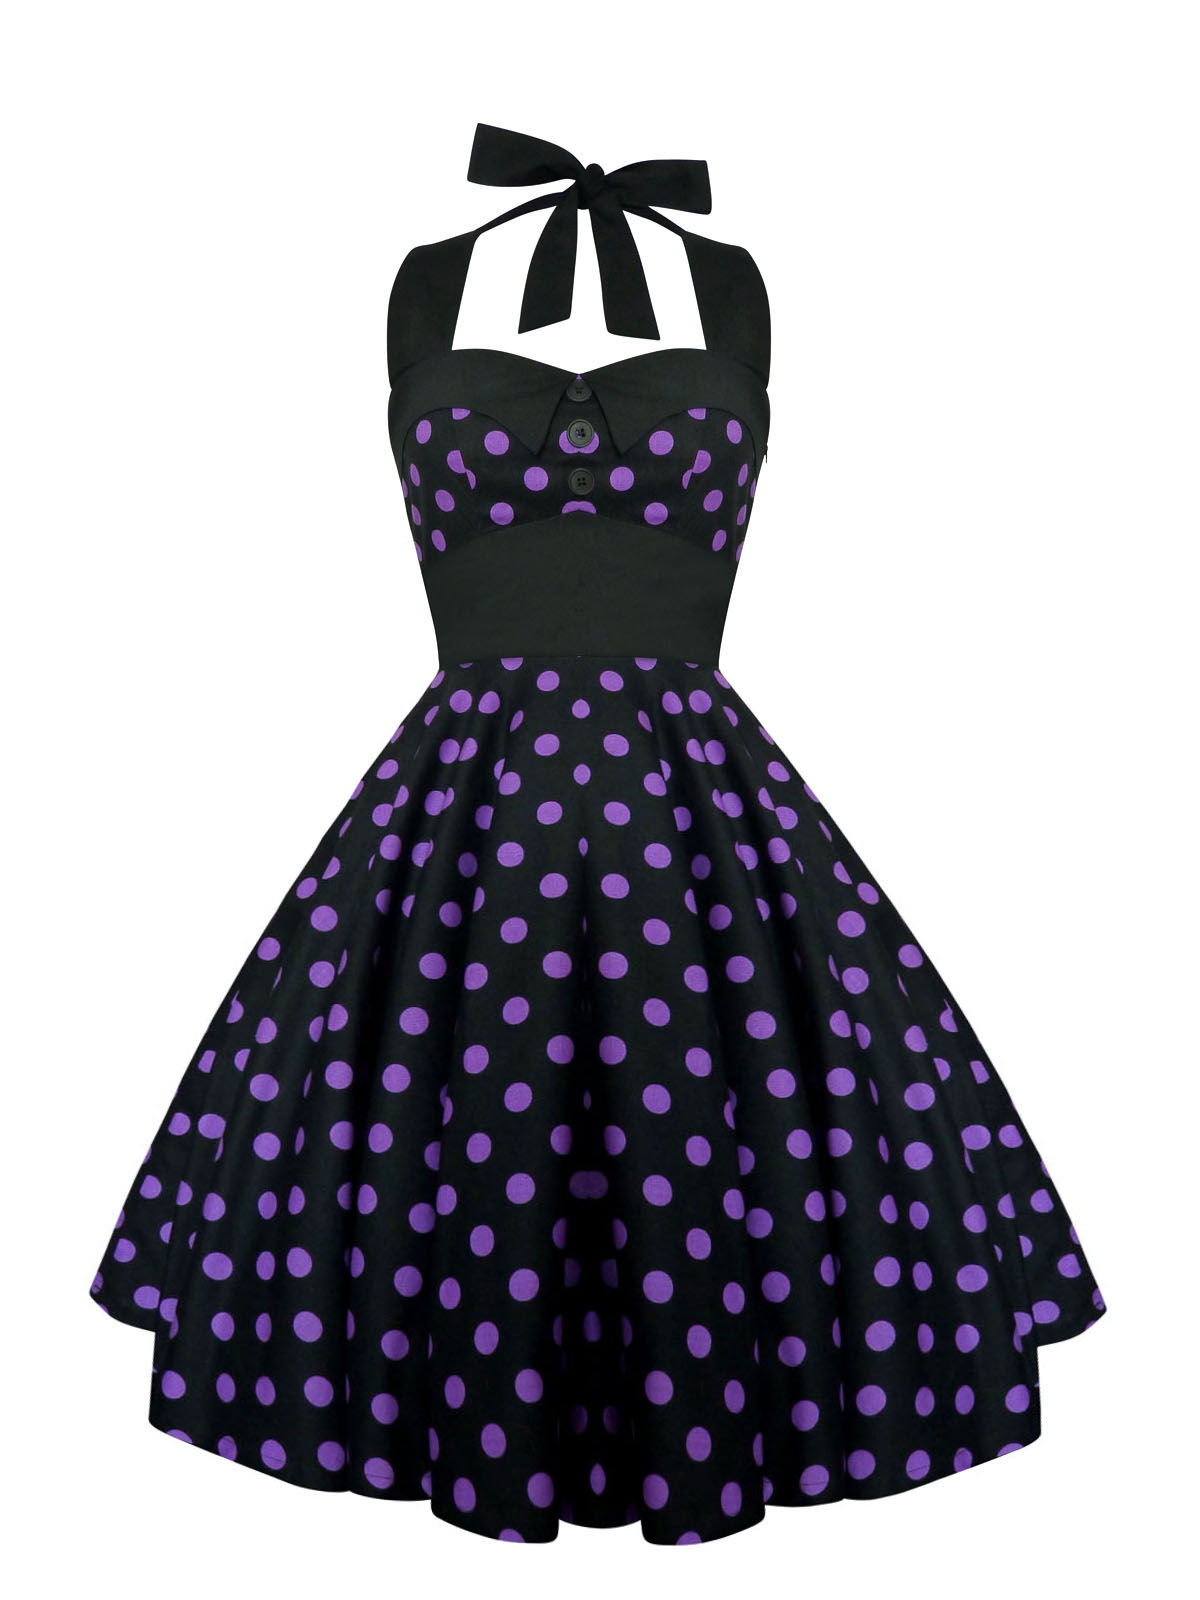 Rockabilly Pin Up Black Purple Polka Dot Dress Gothic 50s Swing Retro